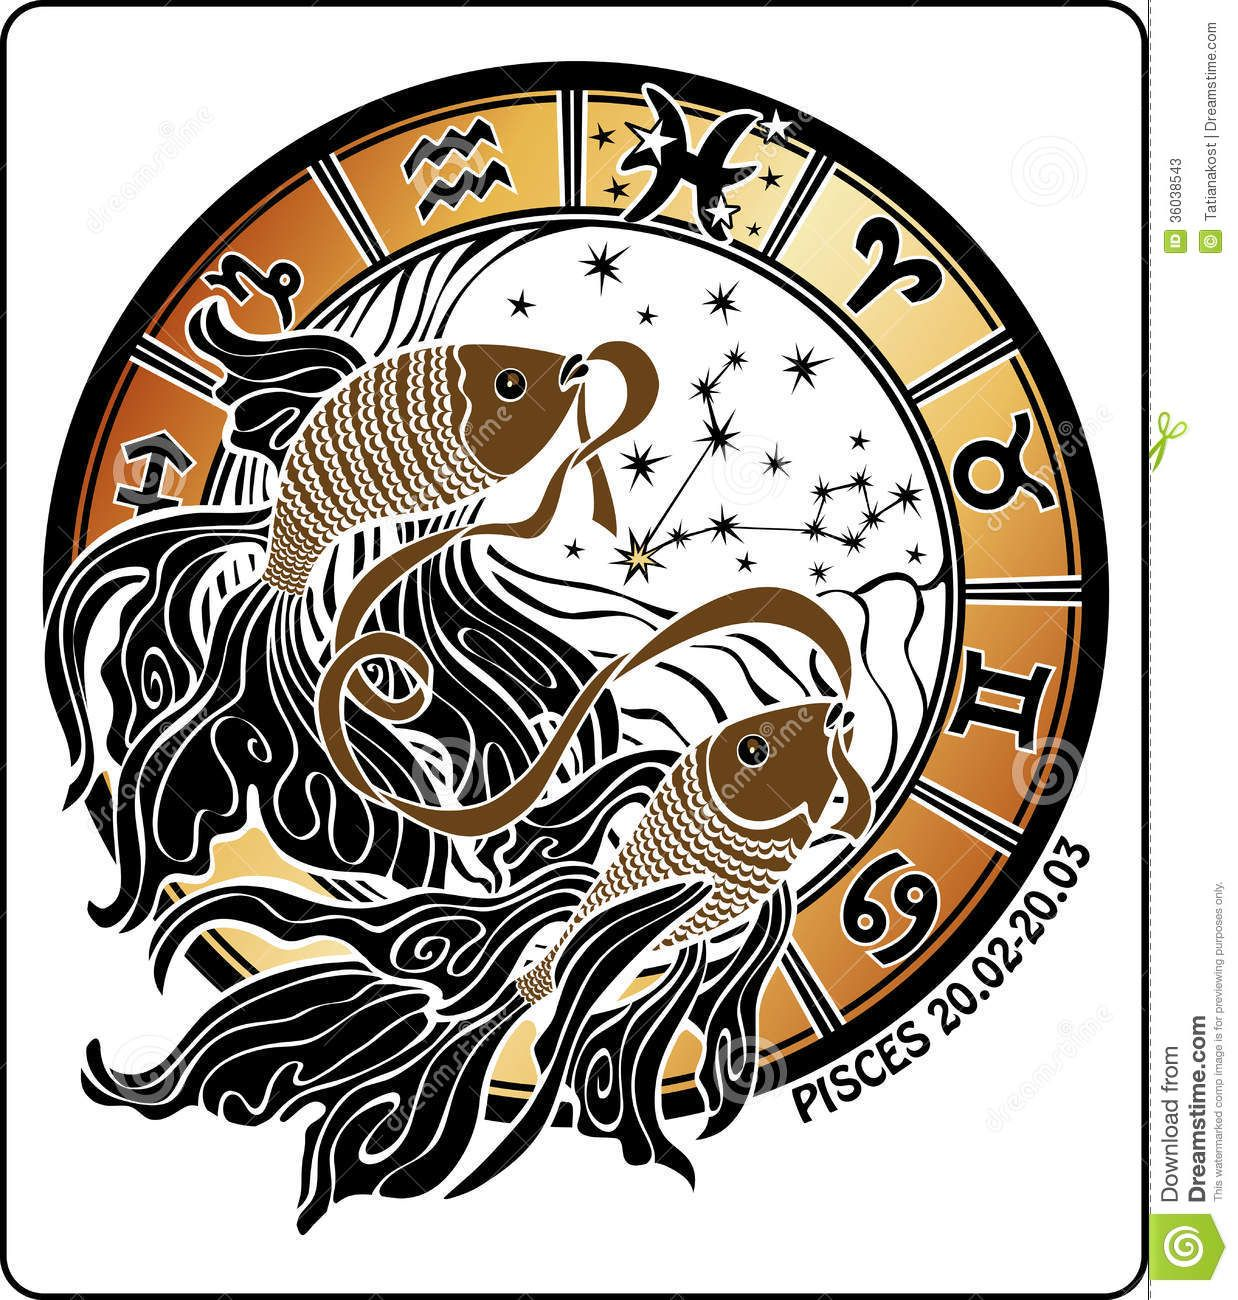 Pisces and the zodiac signhoroscope circlector art two gold fish hold mouth tape behind them are symbols of all zodiac signs horoscope circle on a white background buycottarizona